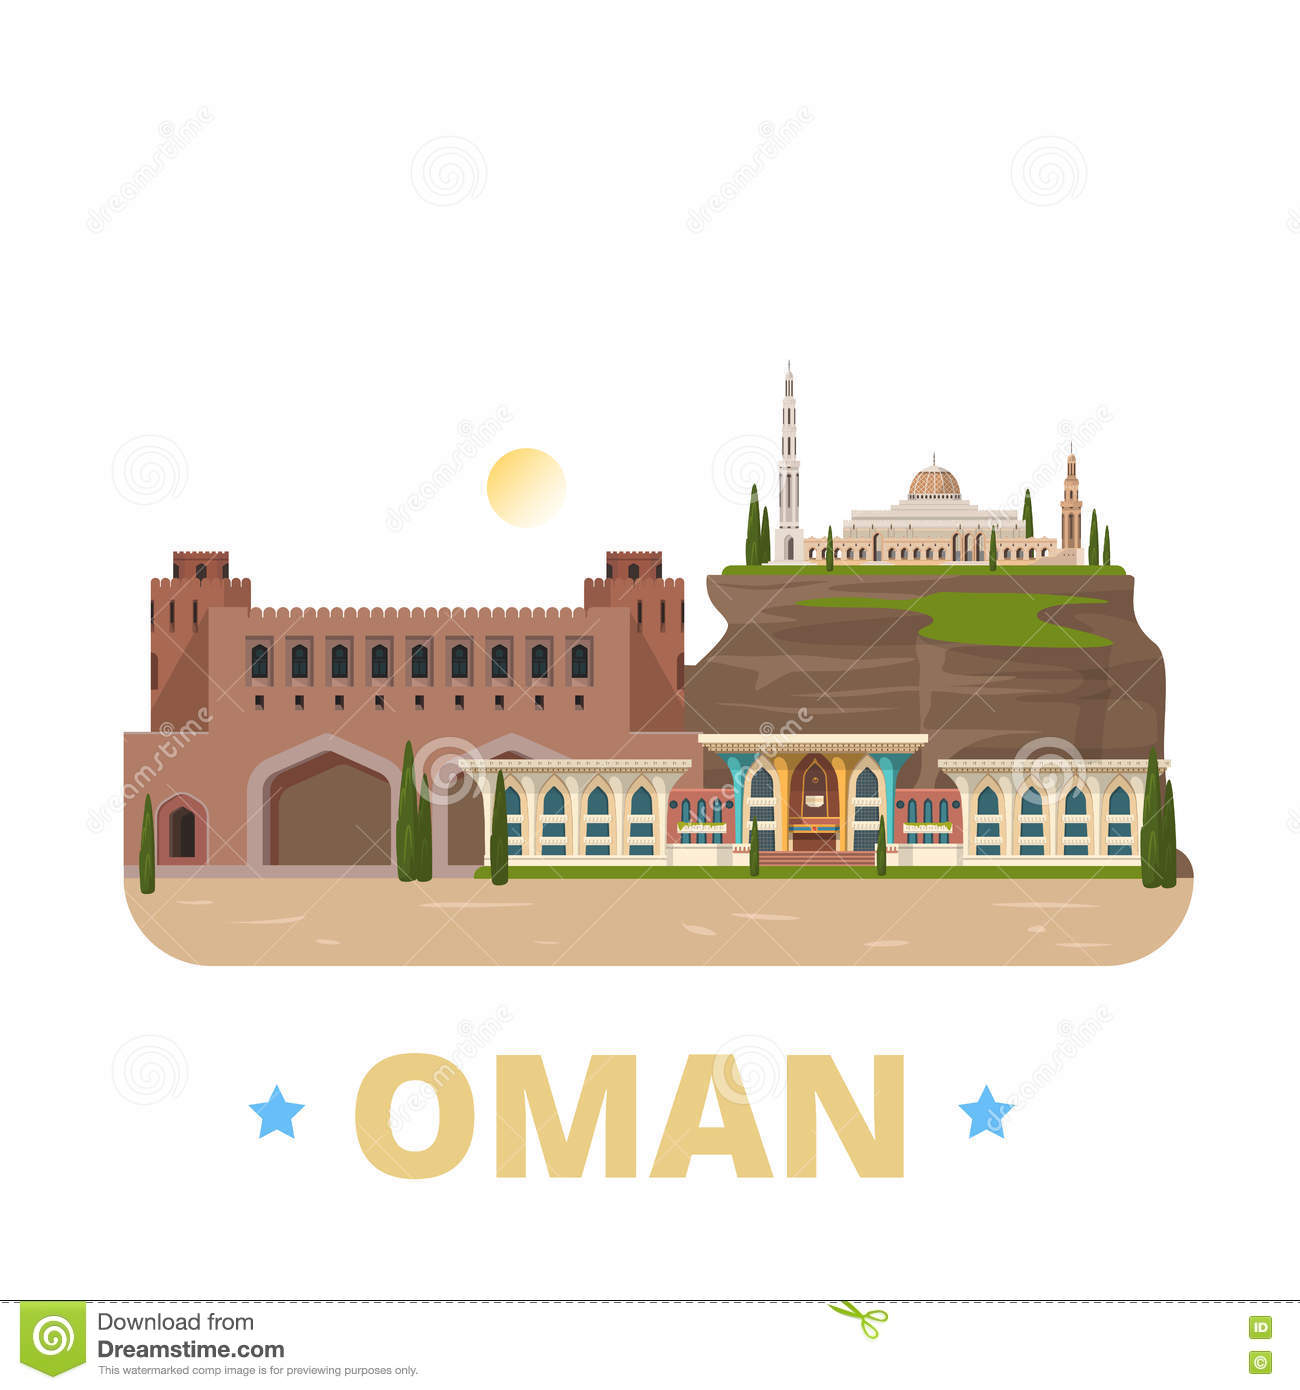 Floor Plan Template Free Oman Country Design Template Flat Cartoon Style We Stock